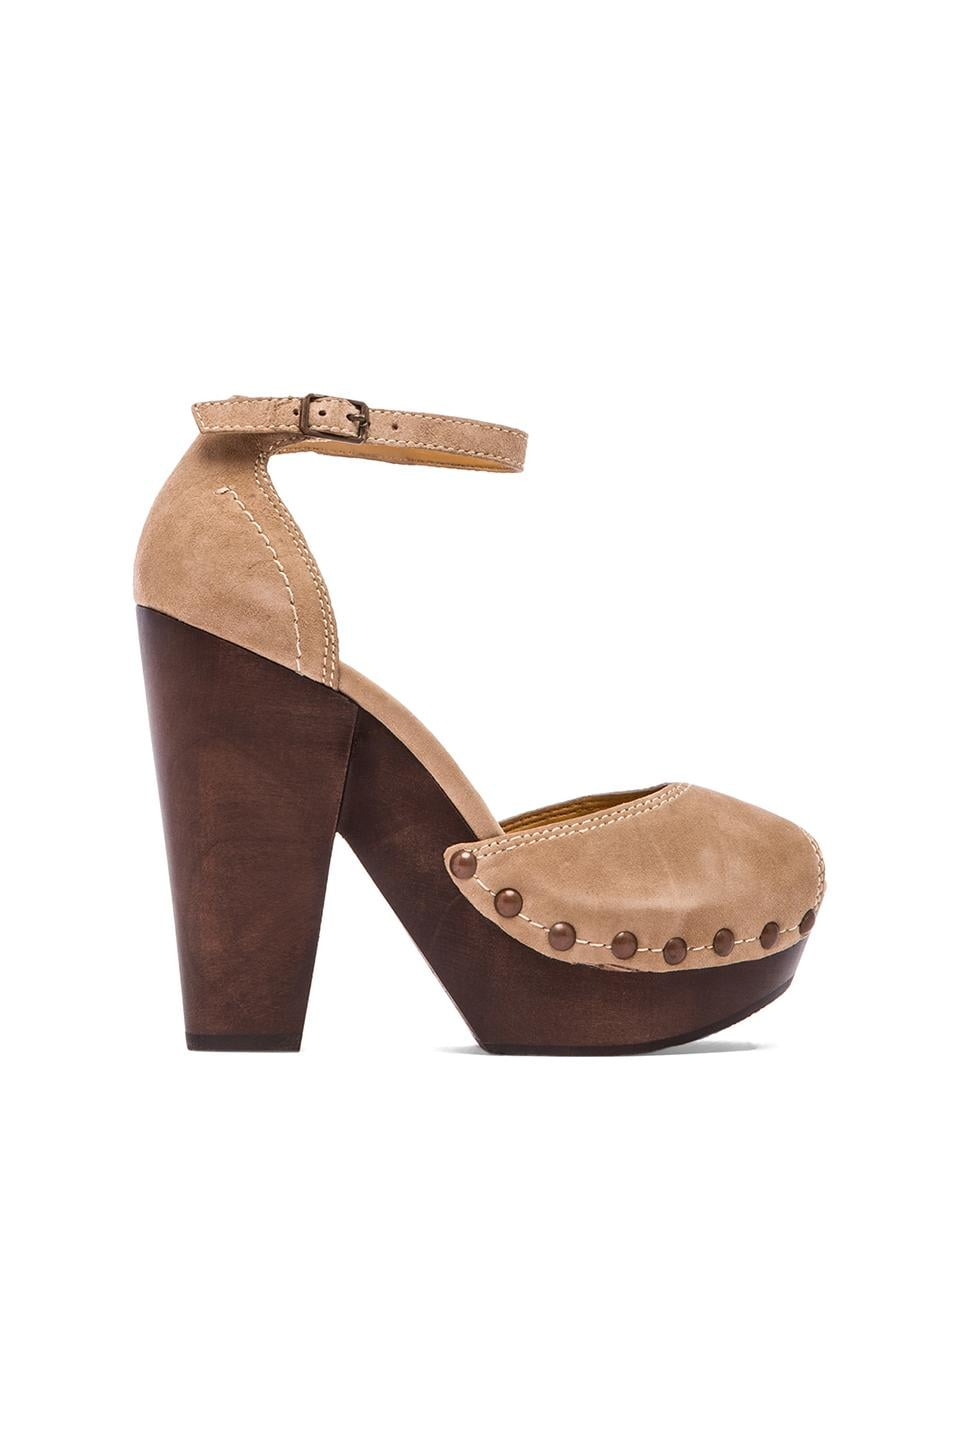 Dolce Vita Huxley Heel in Natural